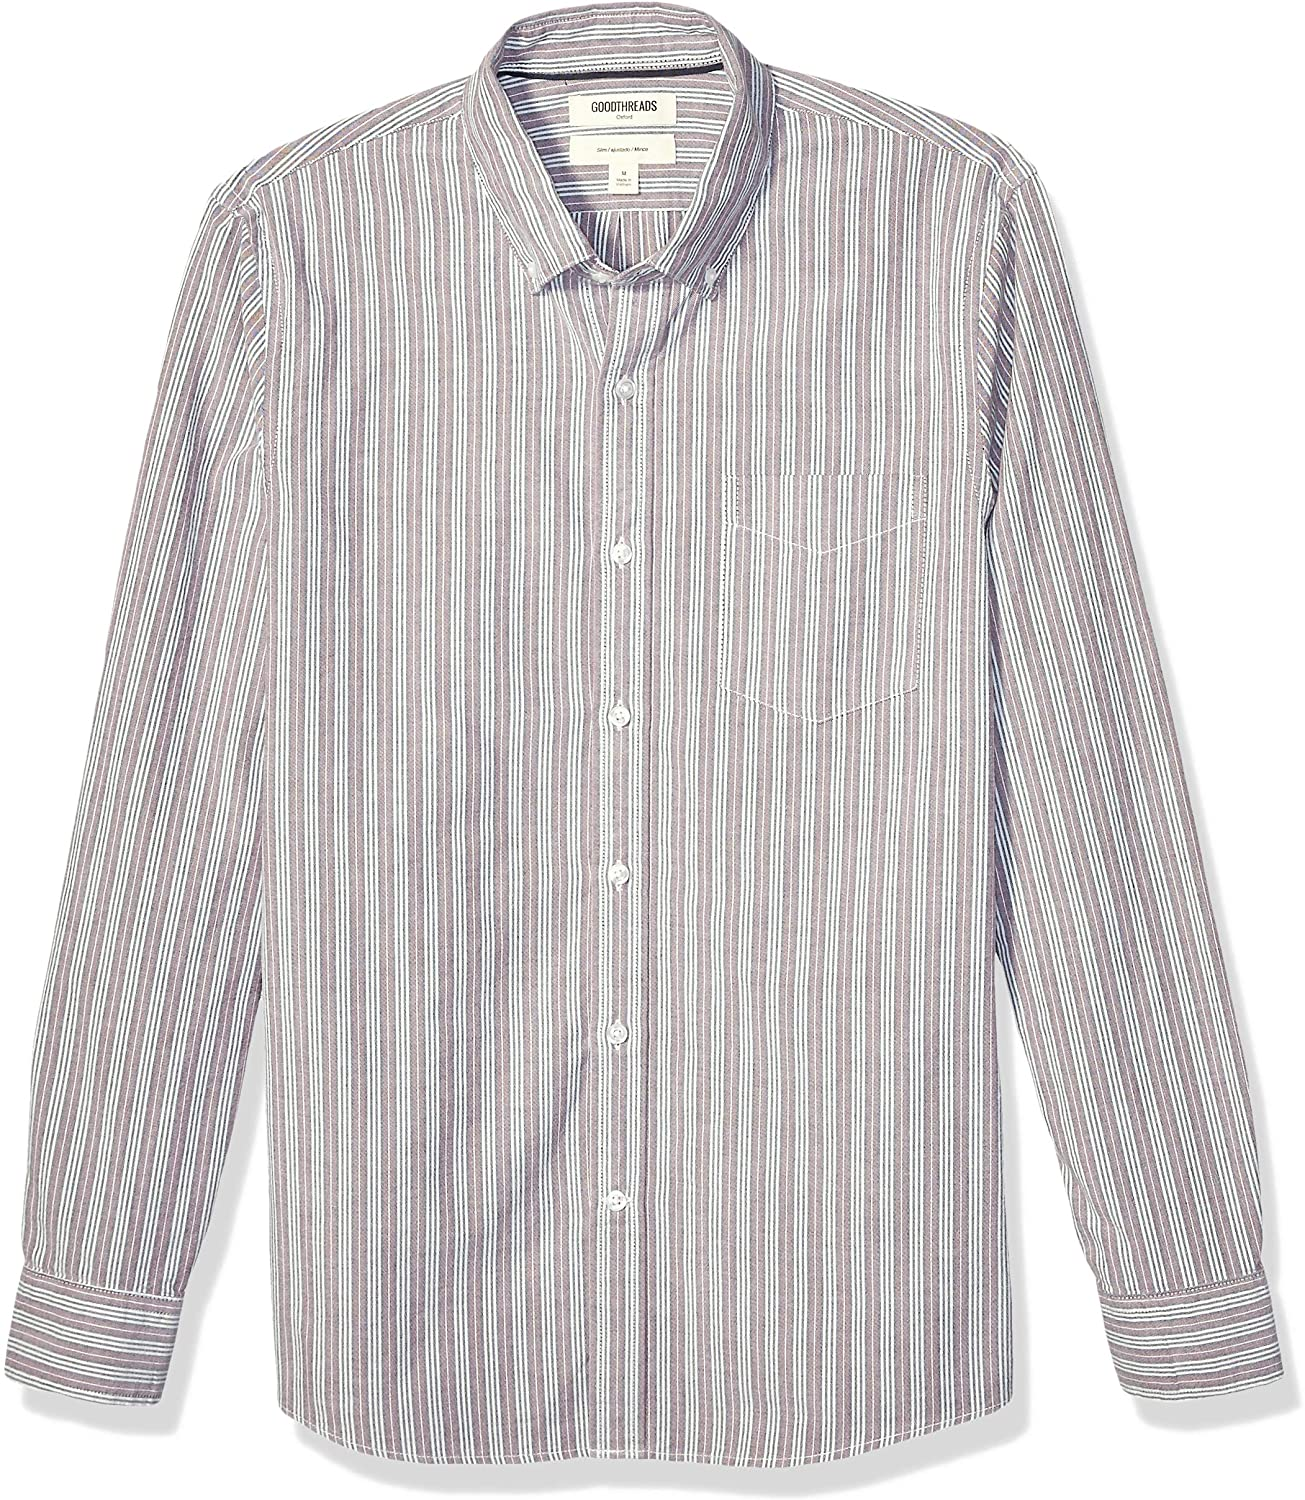 Marchio Goodthreads Slim-Fit Long-Sleeve Fashion Stripe Oxford Shirt Uomo